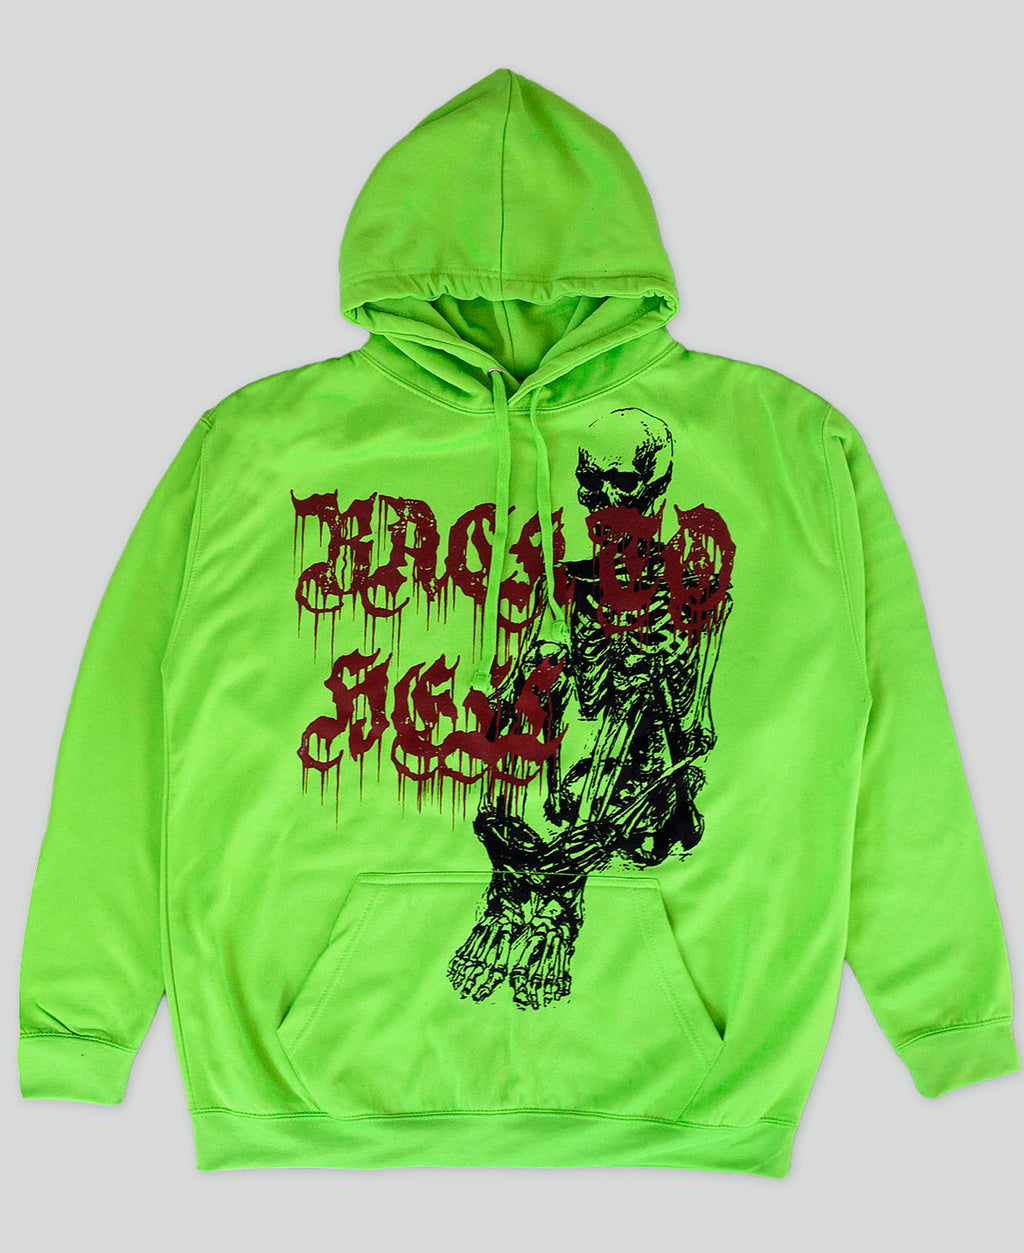 Hell And Back Hoodie - The Anti Life